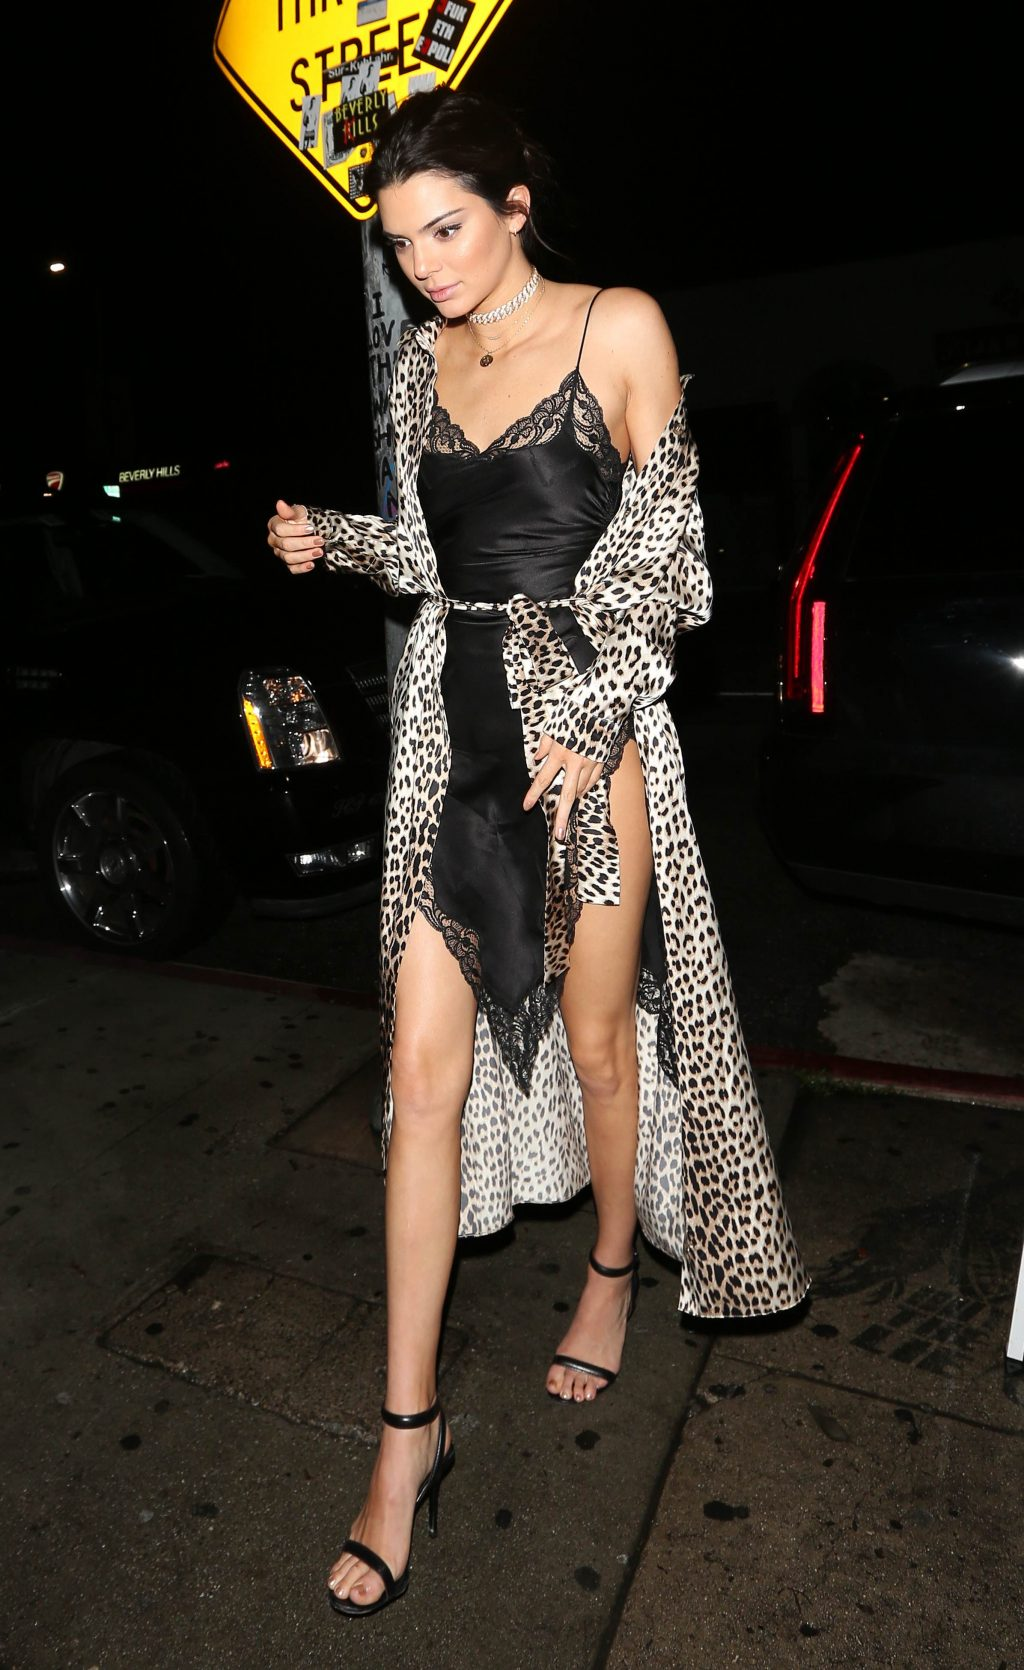 e746a01ed6ca Kendall Jenner Latest News, Pictures, and Videos - SavoirFlair.com